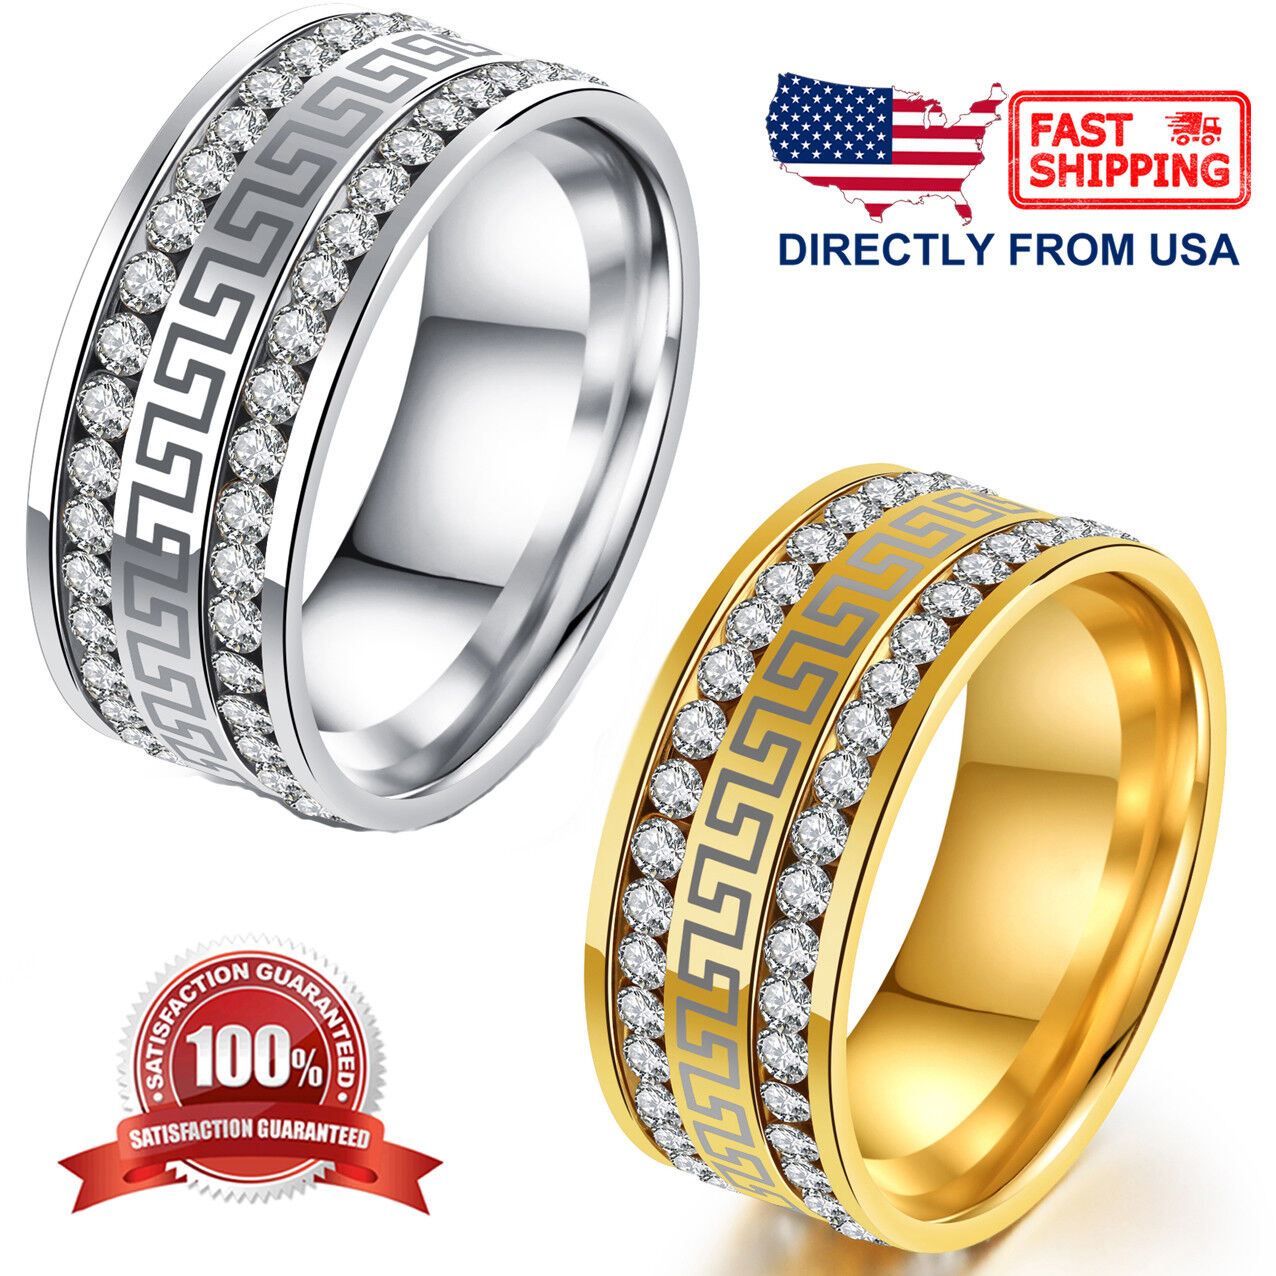 Stainless Steel Greek Key Cubic Zirconia Comfort Fit Wedding Band Unisex Ring Jewelry & Watches